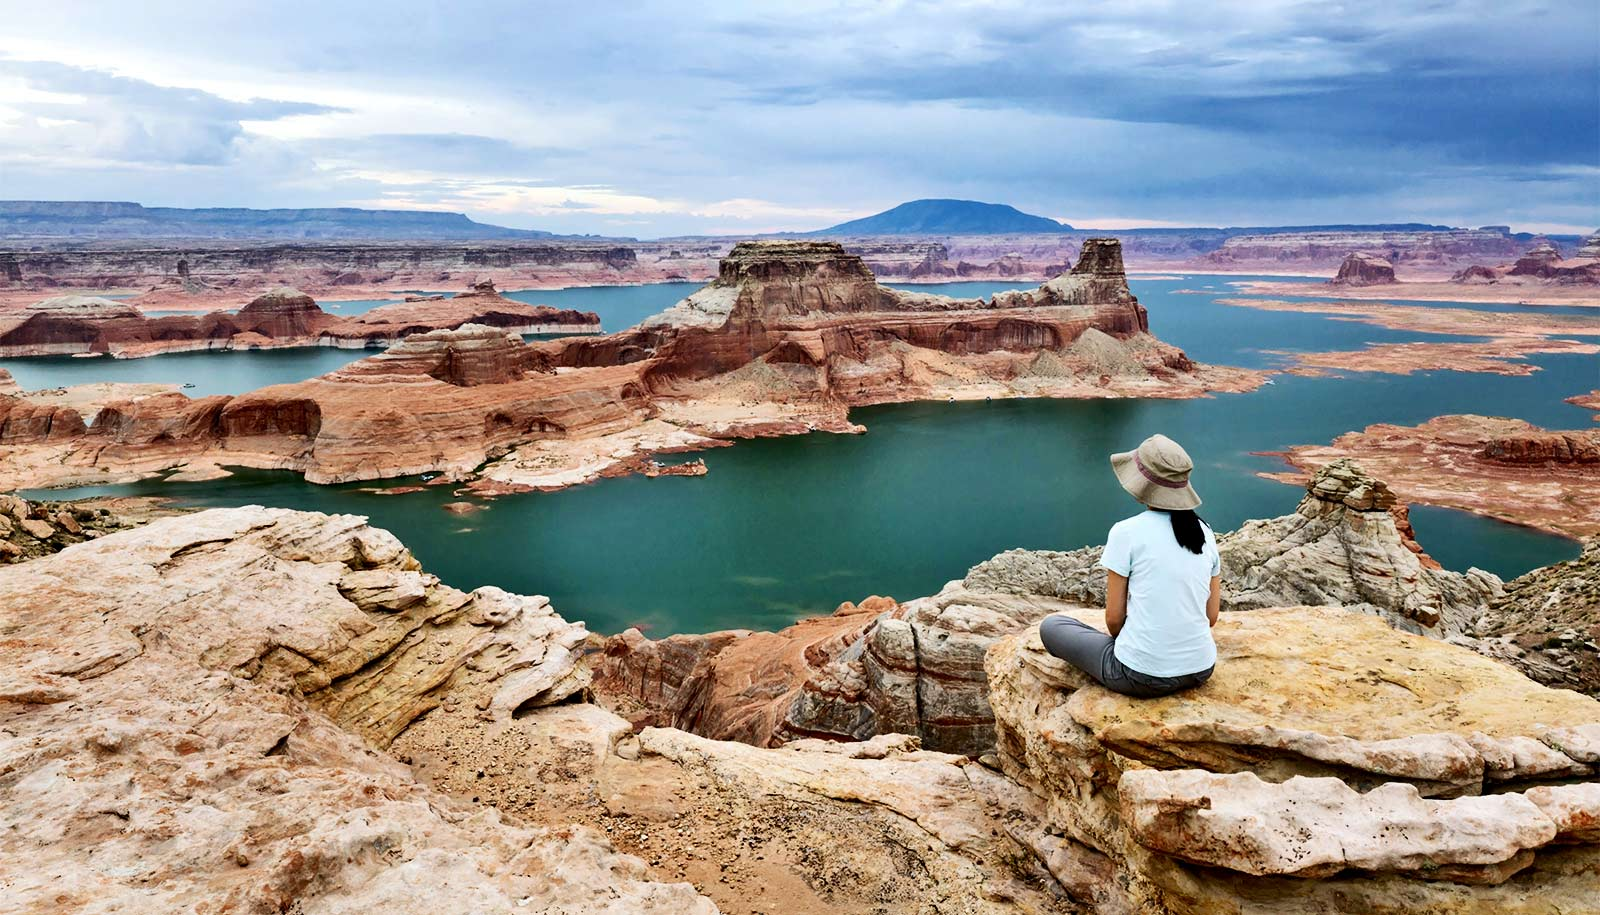 A woman looks out over Lake Powell, with patches of water broken up by red rock formations